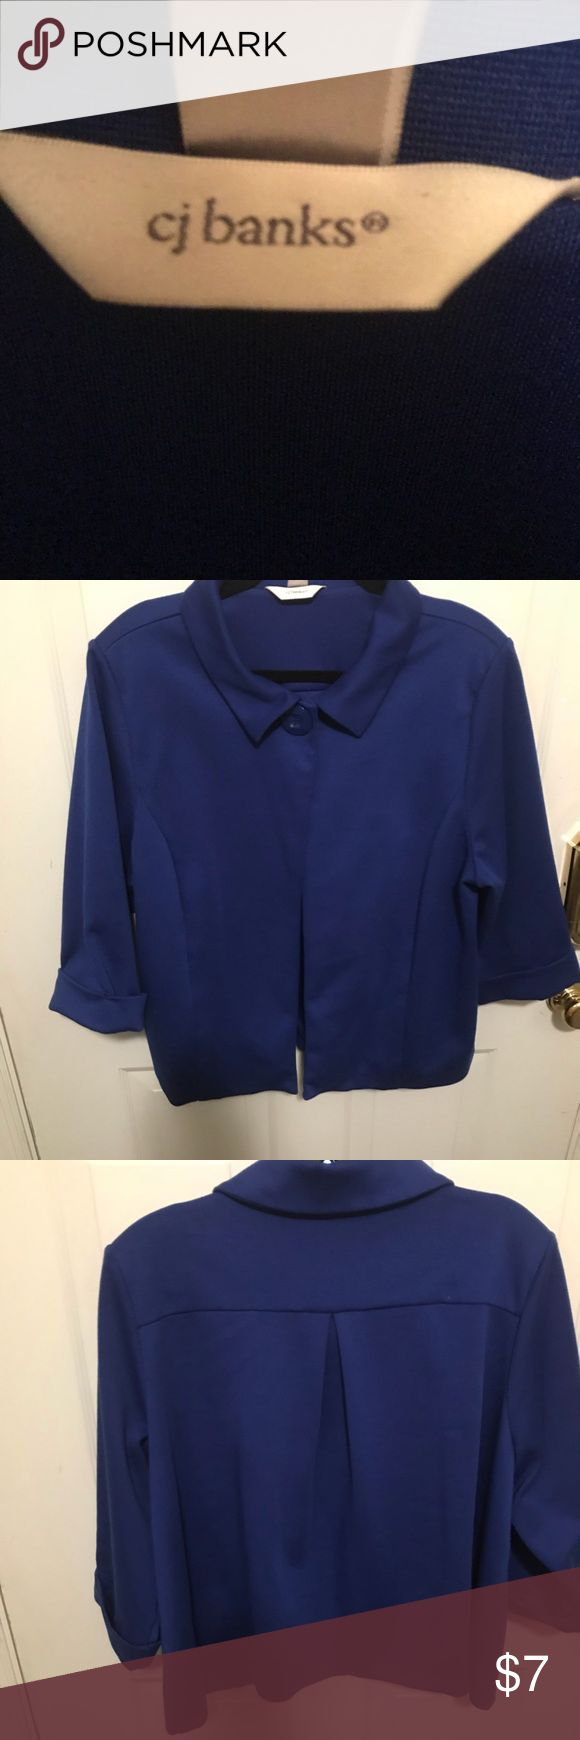 CJ Banks 3/4 Sleeve Cropped Royal Blue Blazer CJ Banks 3/4 Sleeve Cropped Royal Blue Blazer- Jackie O stylish blazer with big front button and open pleat on the back- size 1X, fits 22-26 CJ Banks Jackets & Coats Blazers